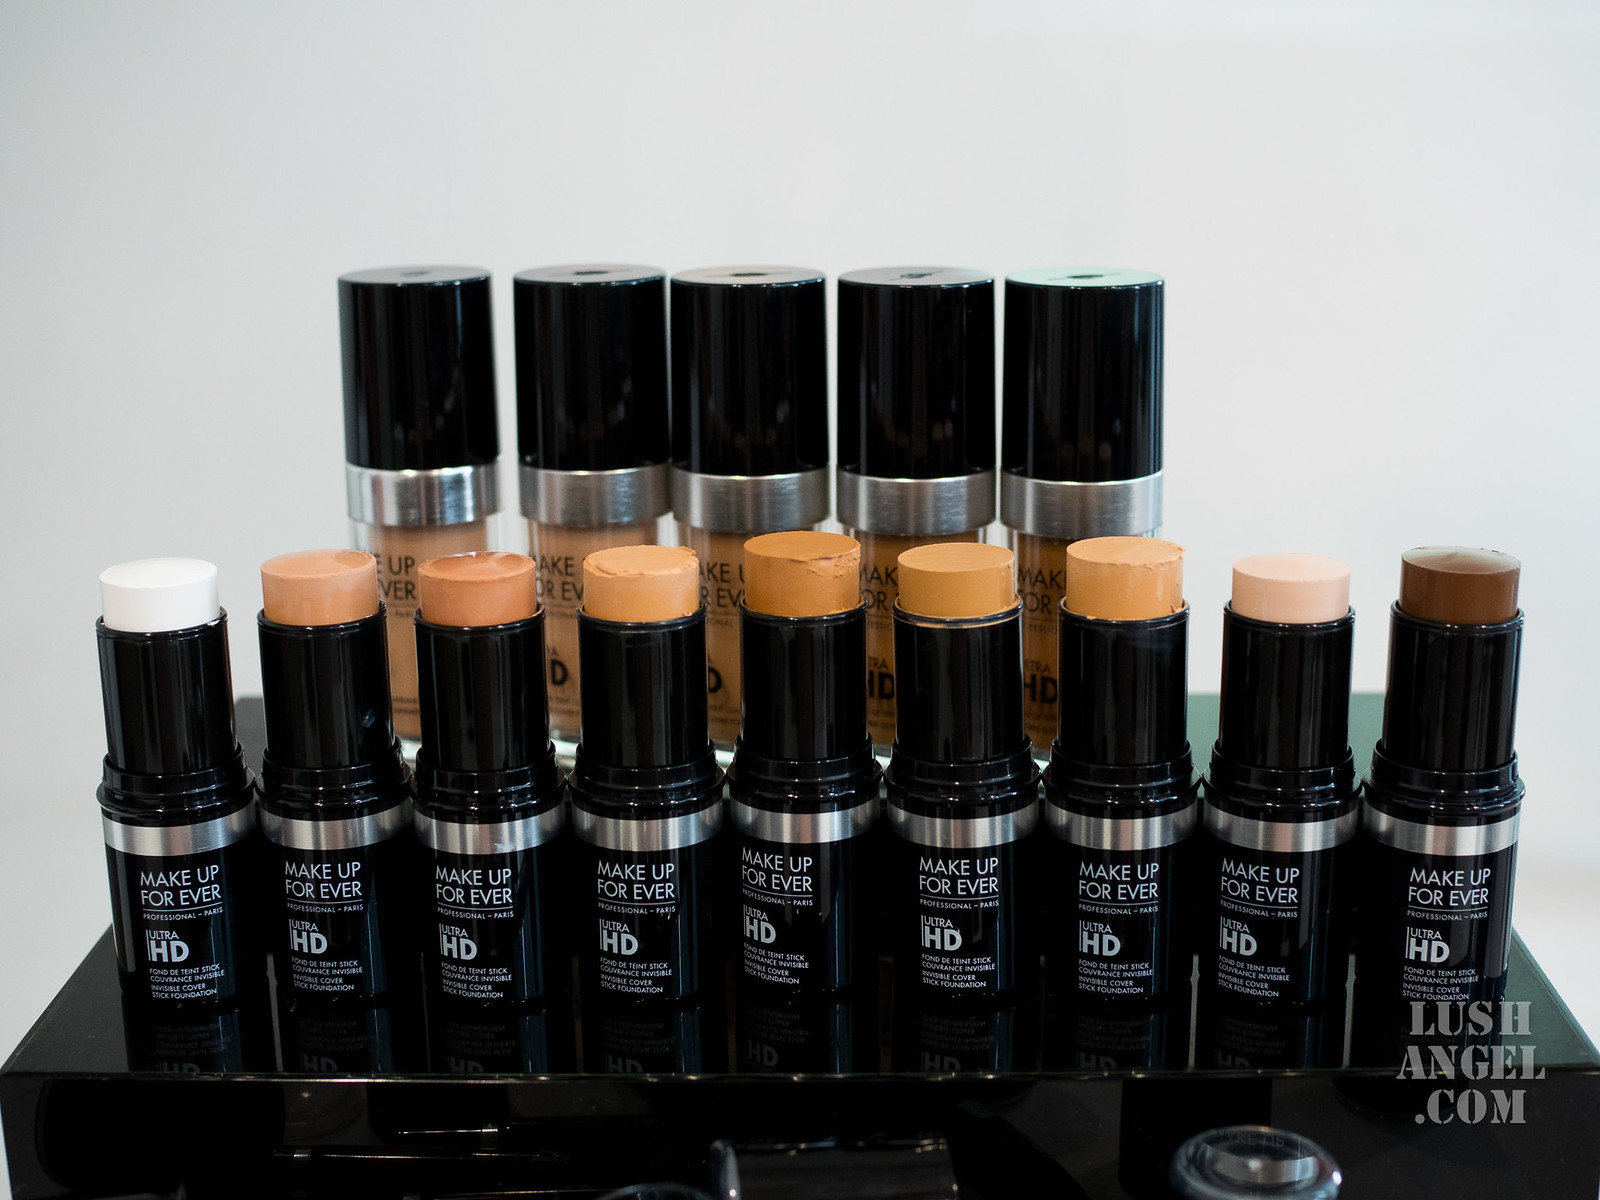 make-up-for-ever-ultra-hd-philippines